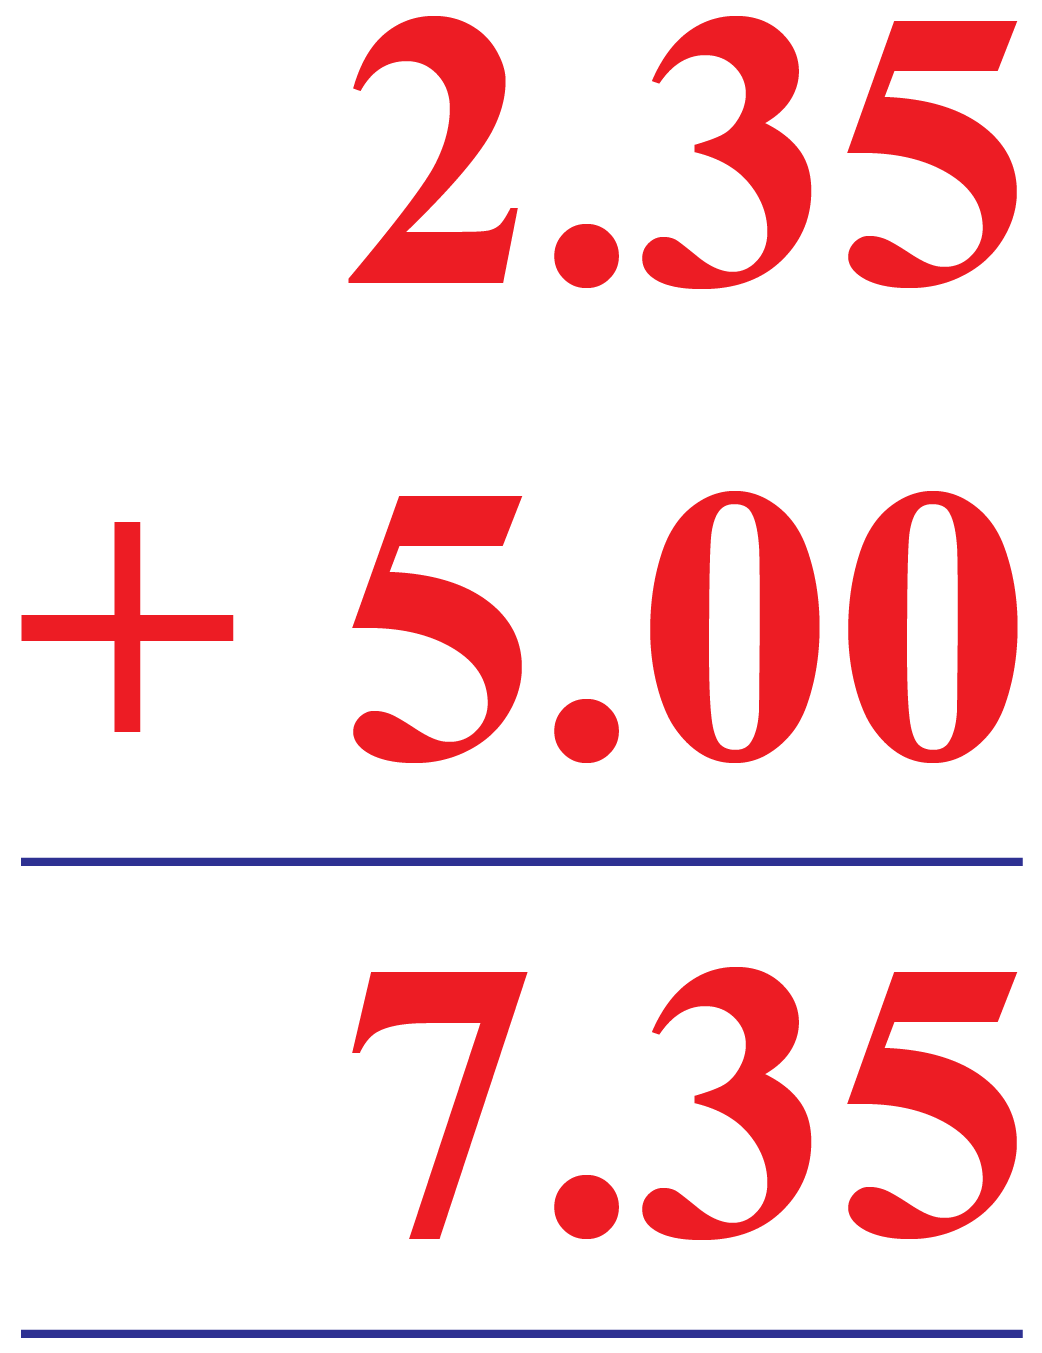 Addition of Decimal Number to Whole Number: Example